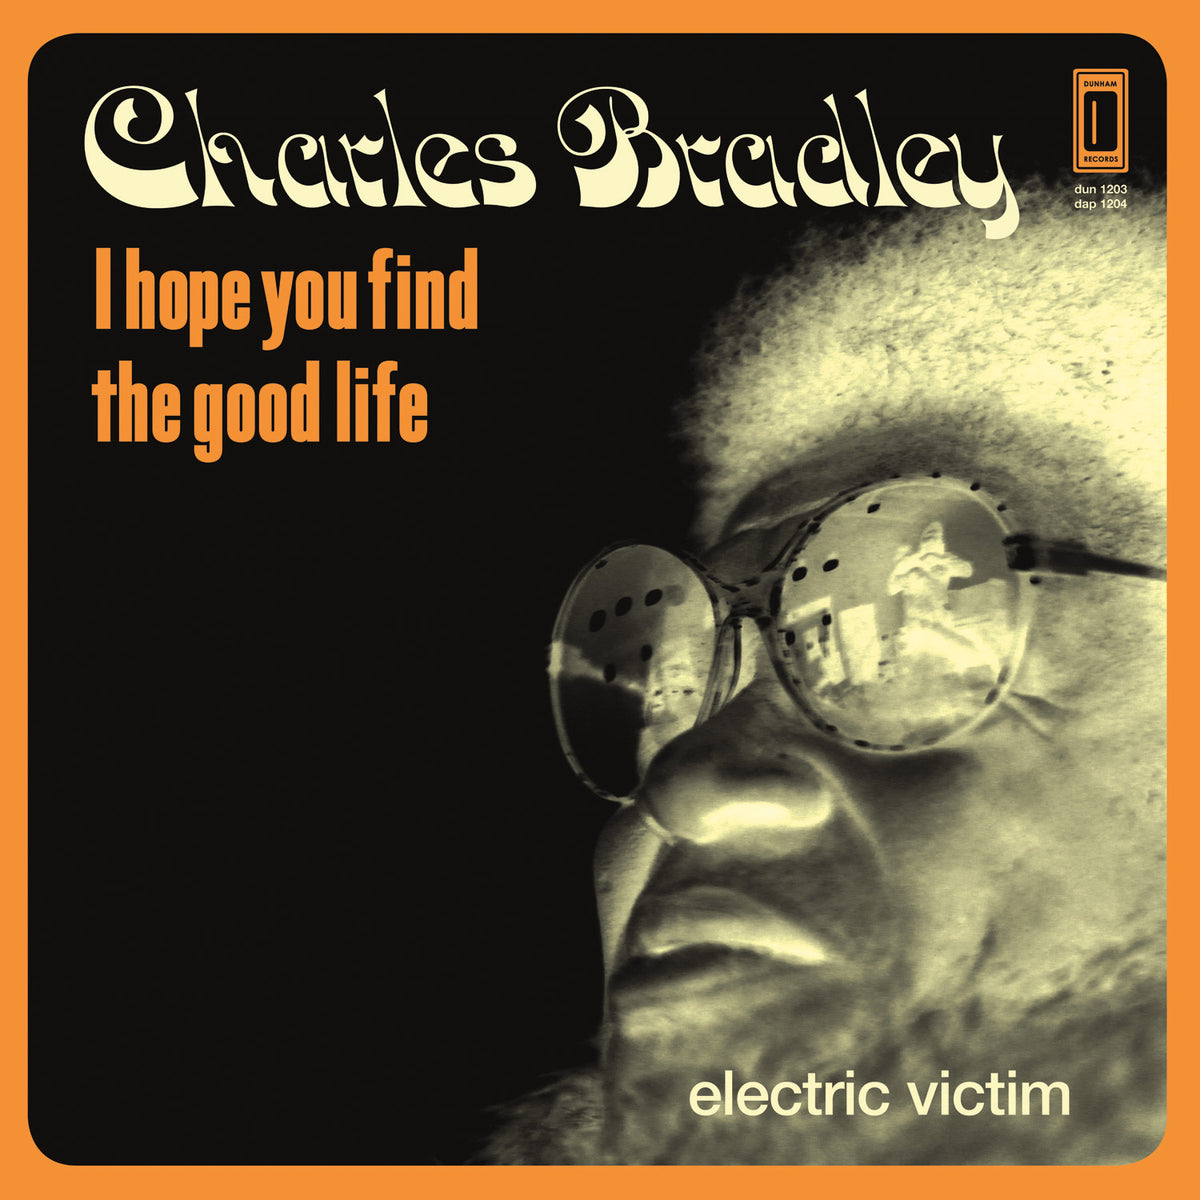 Charles Bradley: I Hope You Find The Good Life Vinyl LP (Record Store Day 2014)